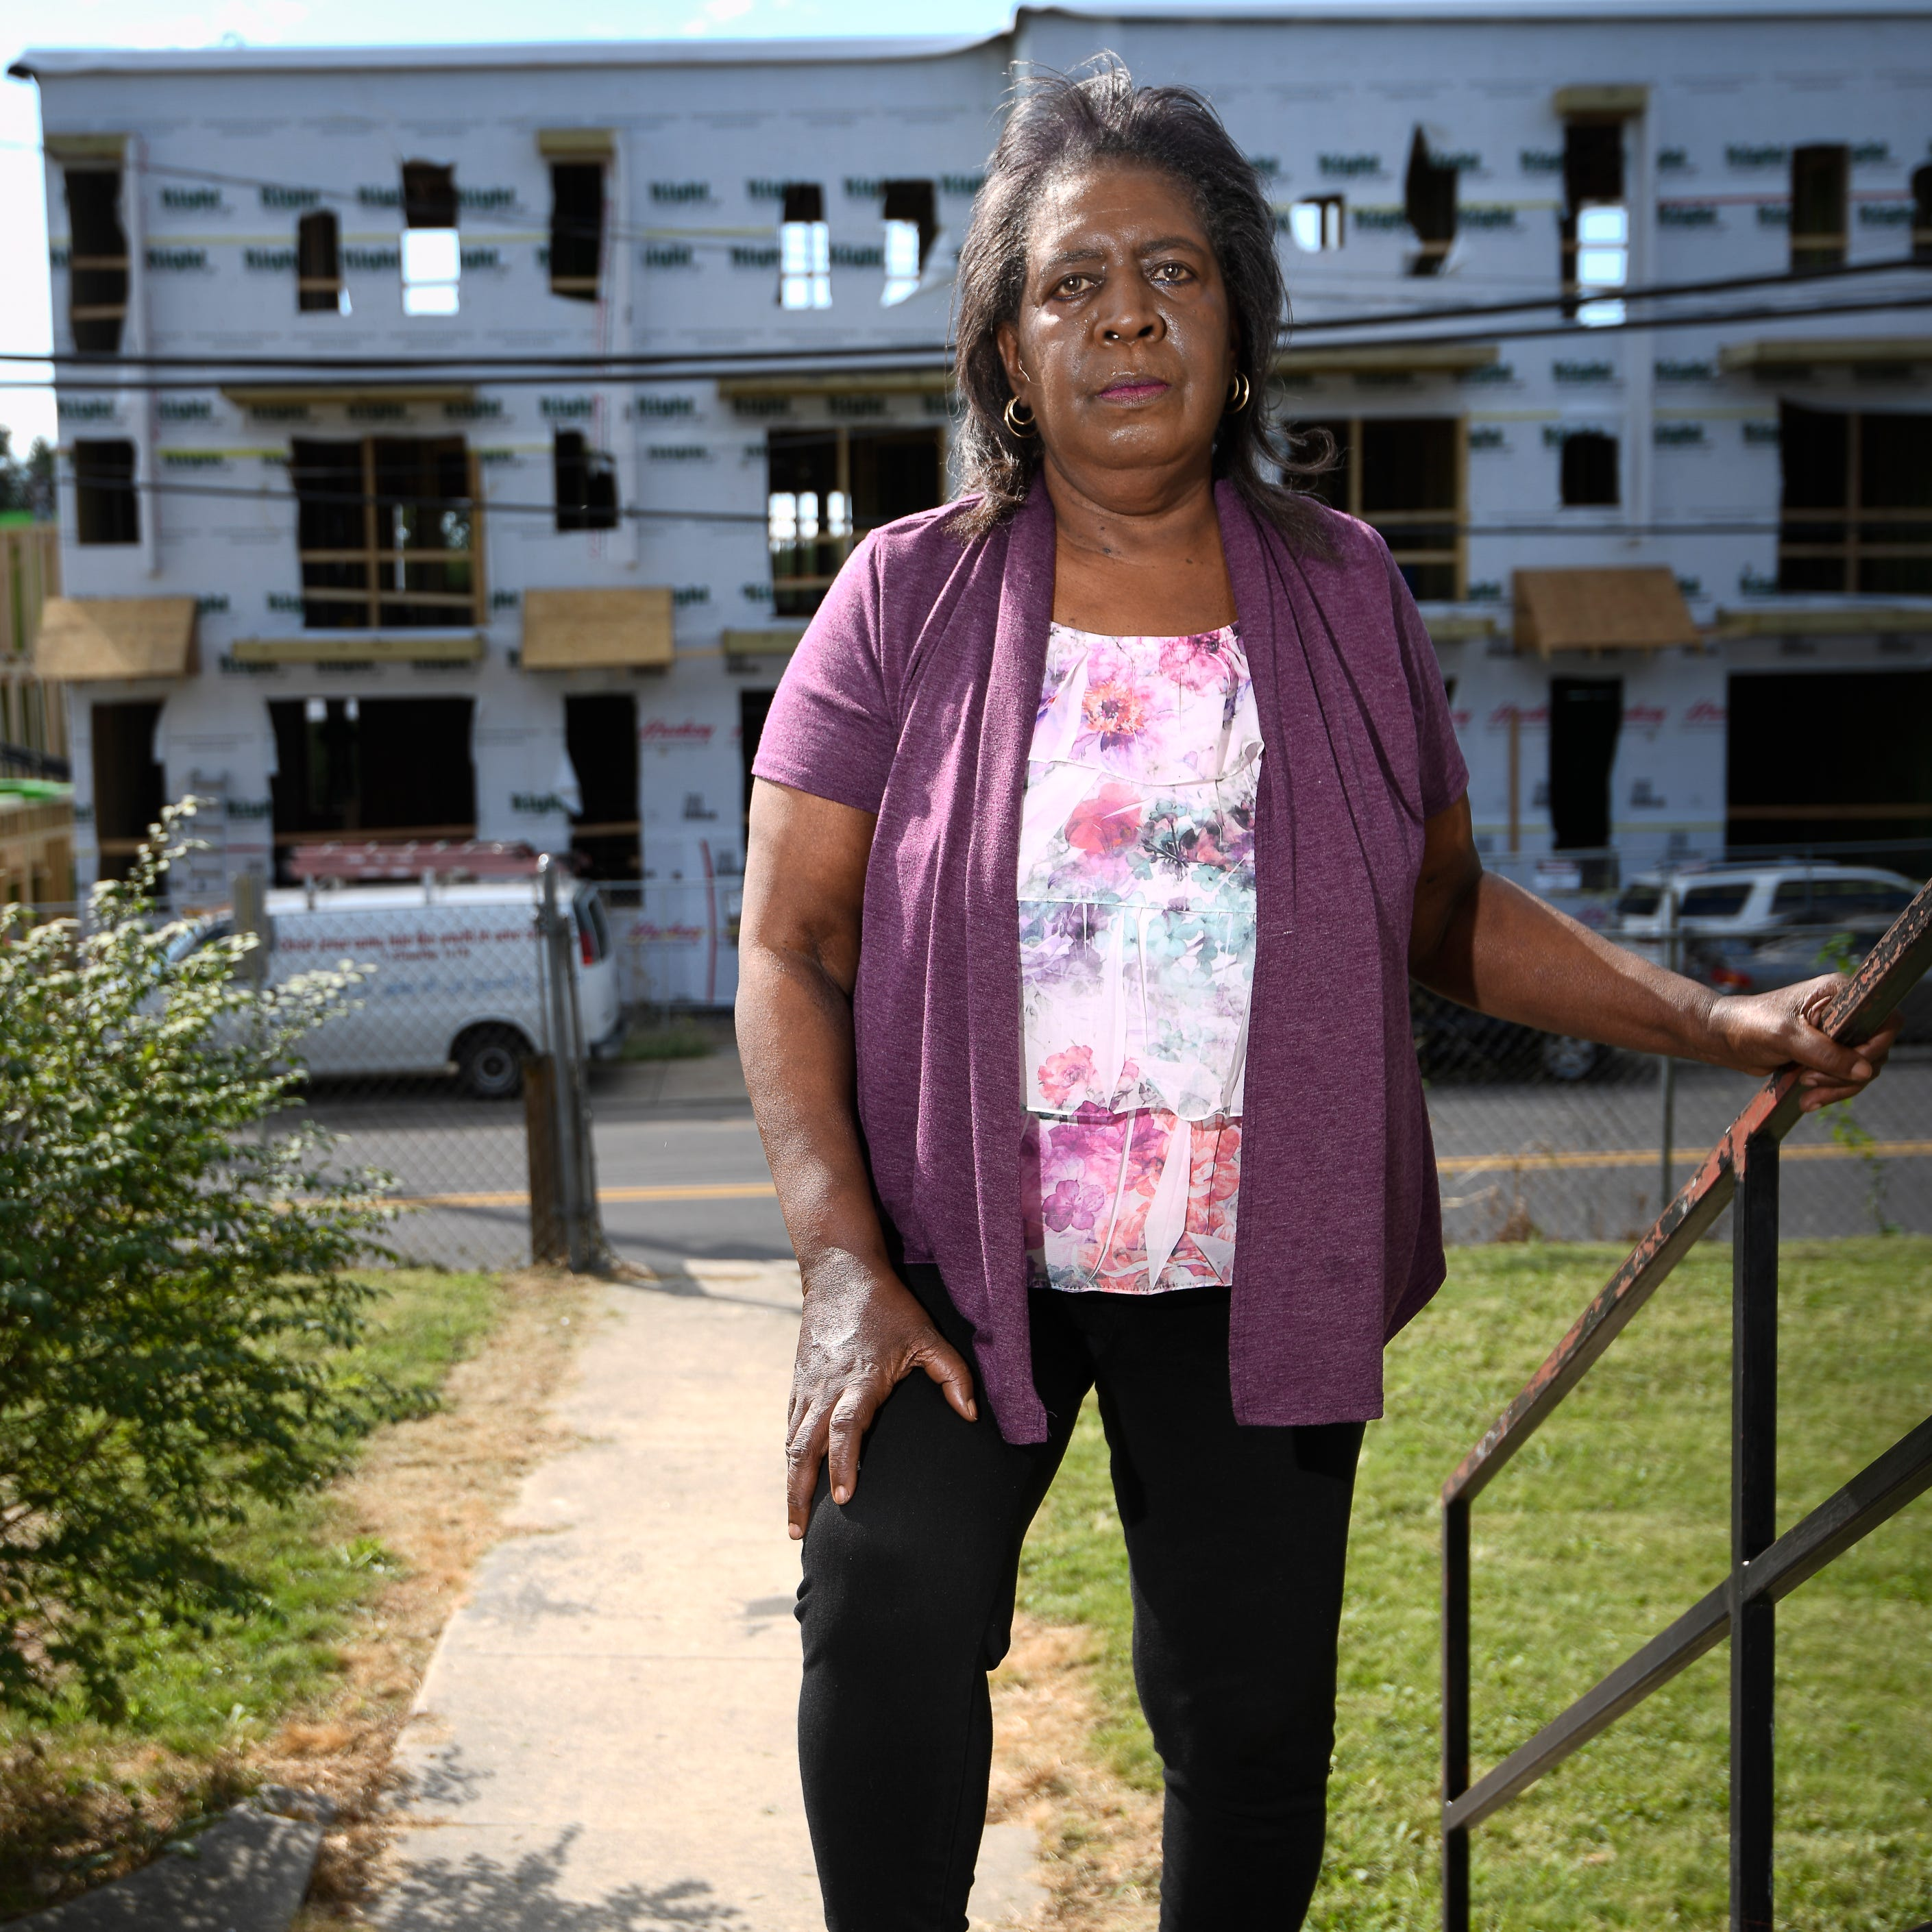 Emotions run high as building boom arrives in another East Nashville neighborhood